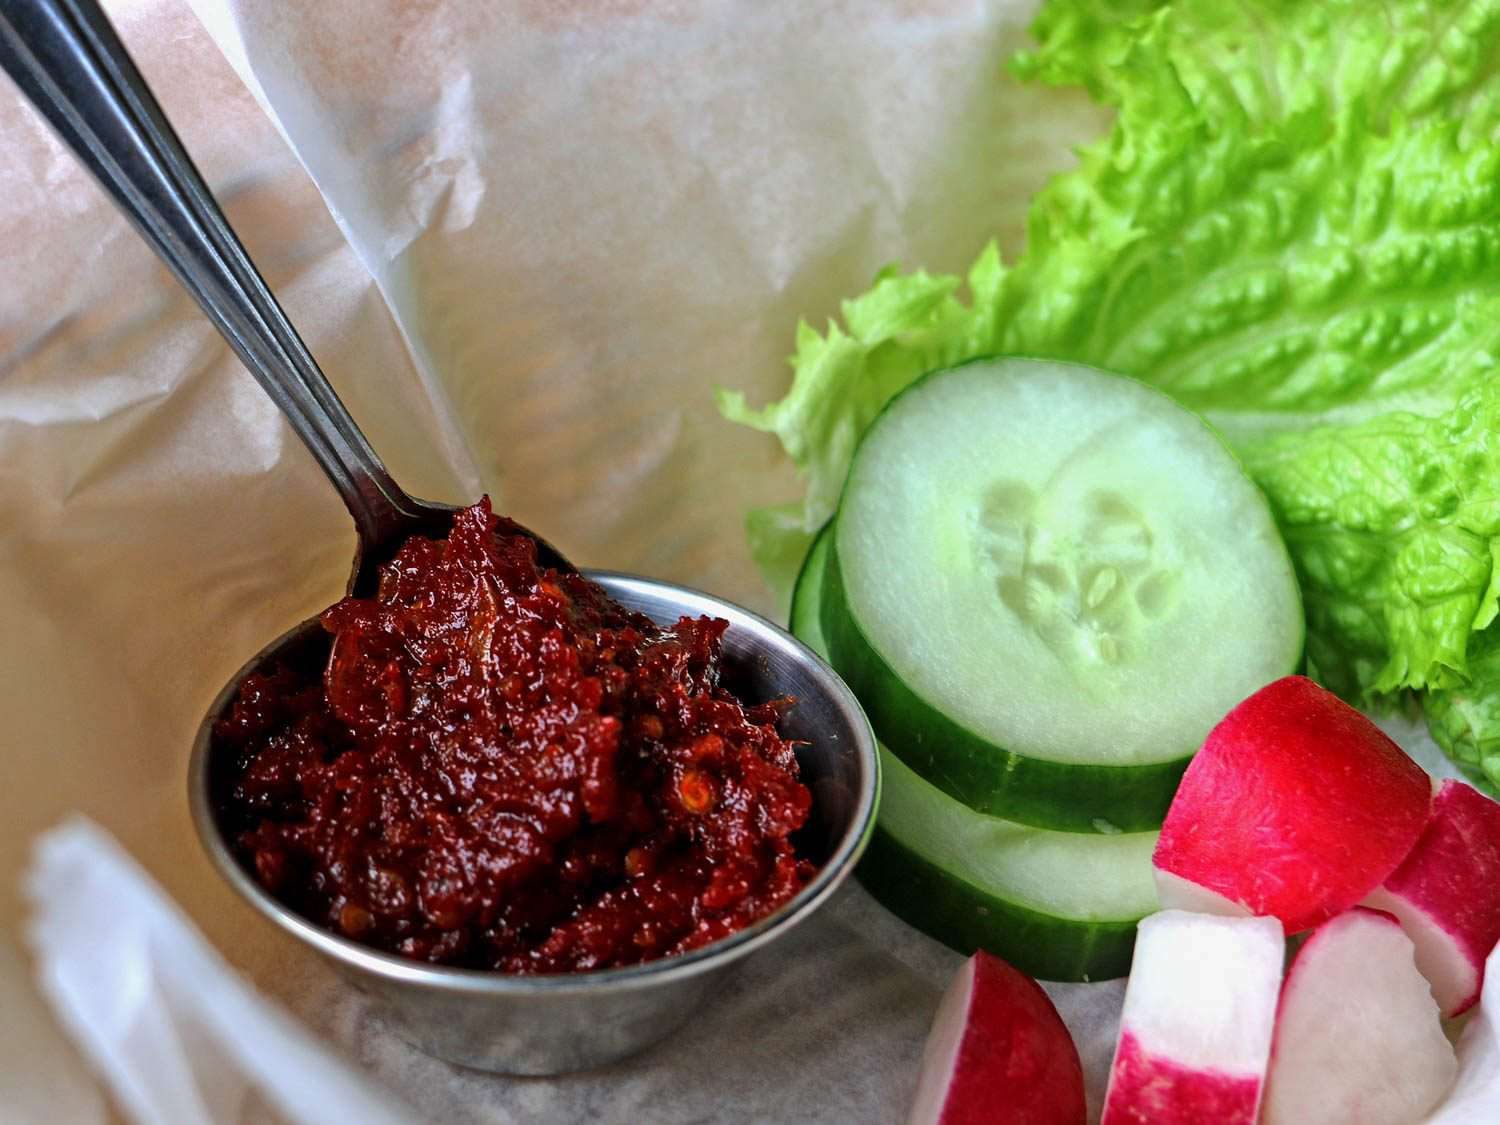 A small silver bowl of dark red hot pepper dip (jaew bong) with a spoon dipped into it, next to raw cucumber, radish, and lettuce